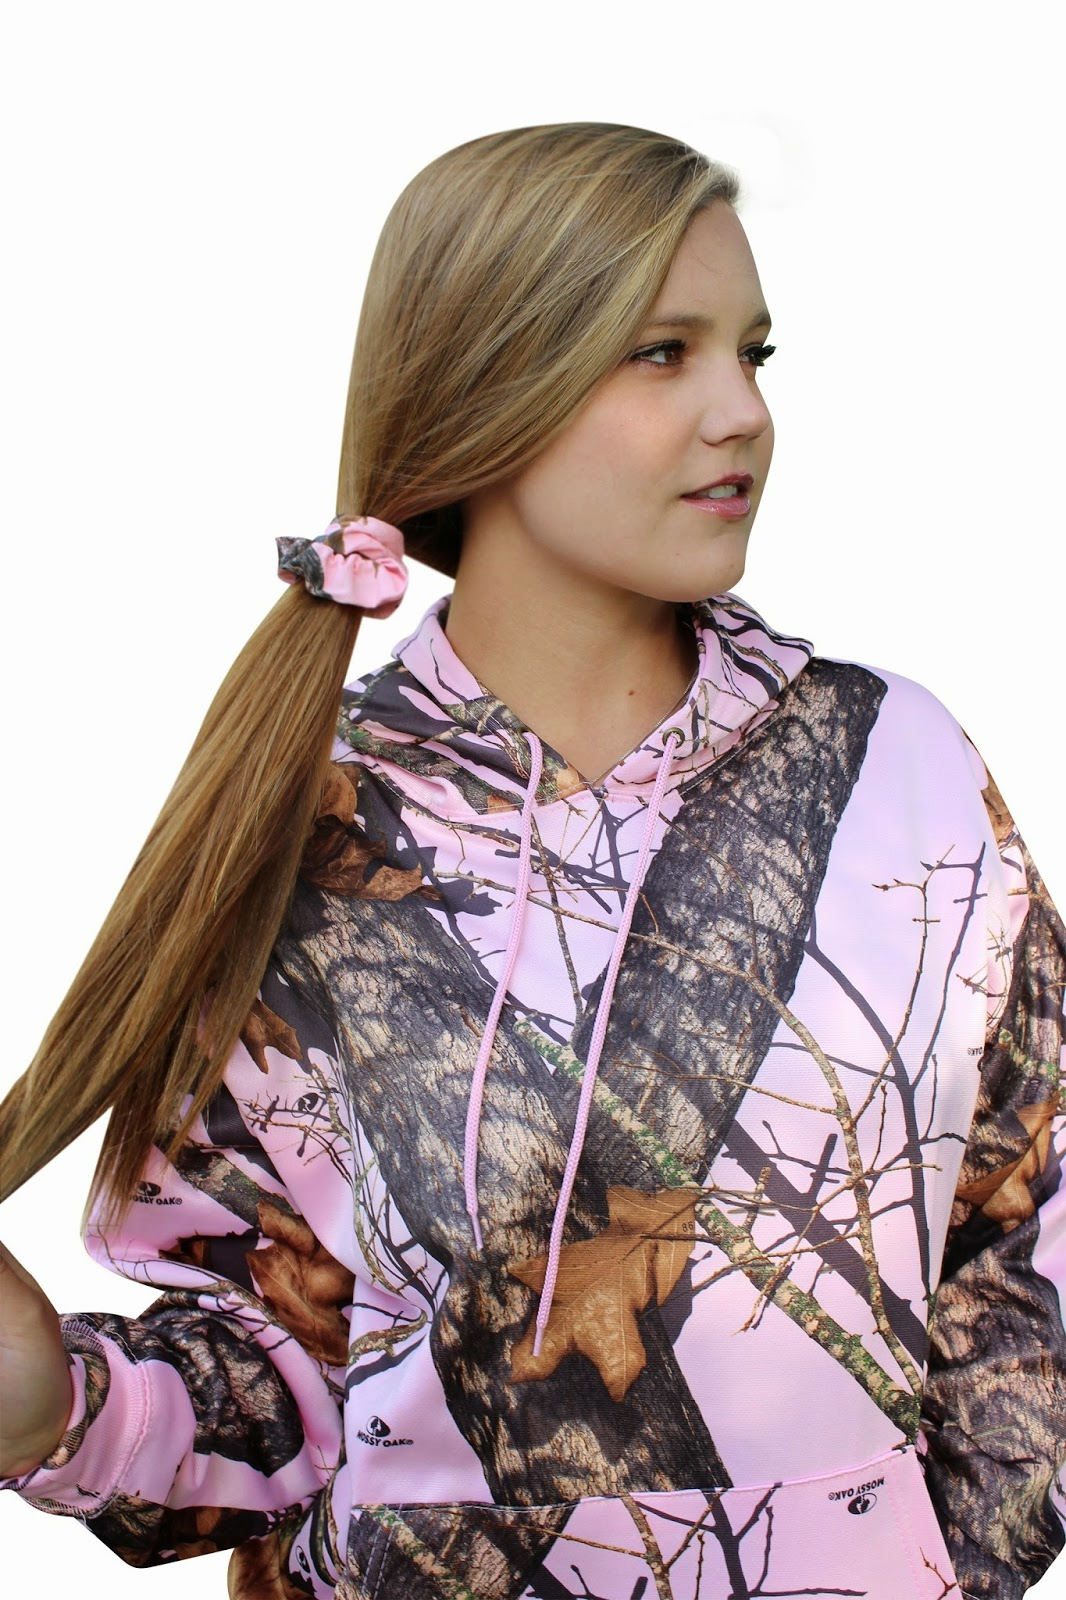 e984fb6e7d75c If you are like me and always looking for plus size cute camo clothing (and  tired of wearing just guys' camo), you'll love this licensed Mossy Oak Pink  camo ...